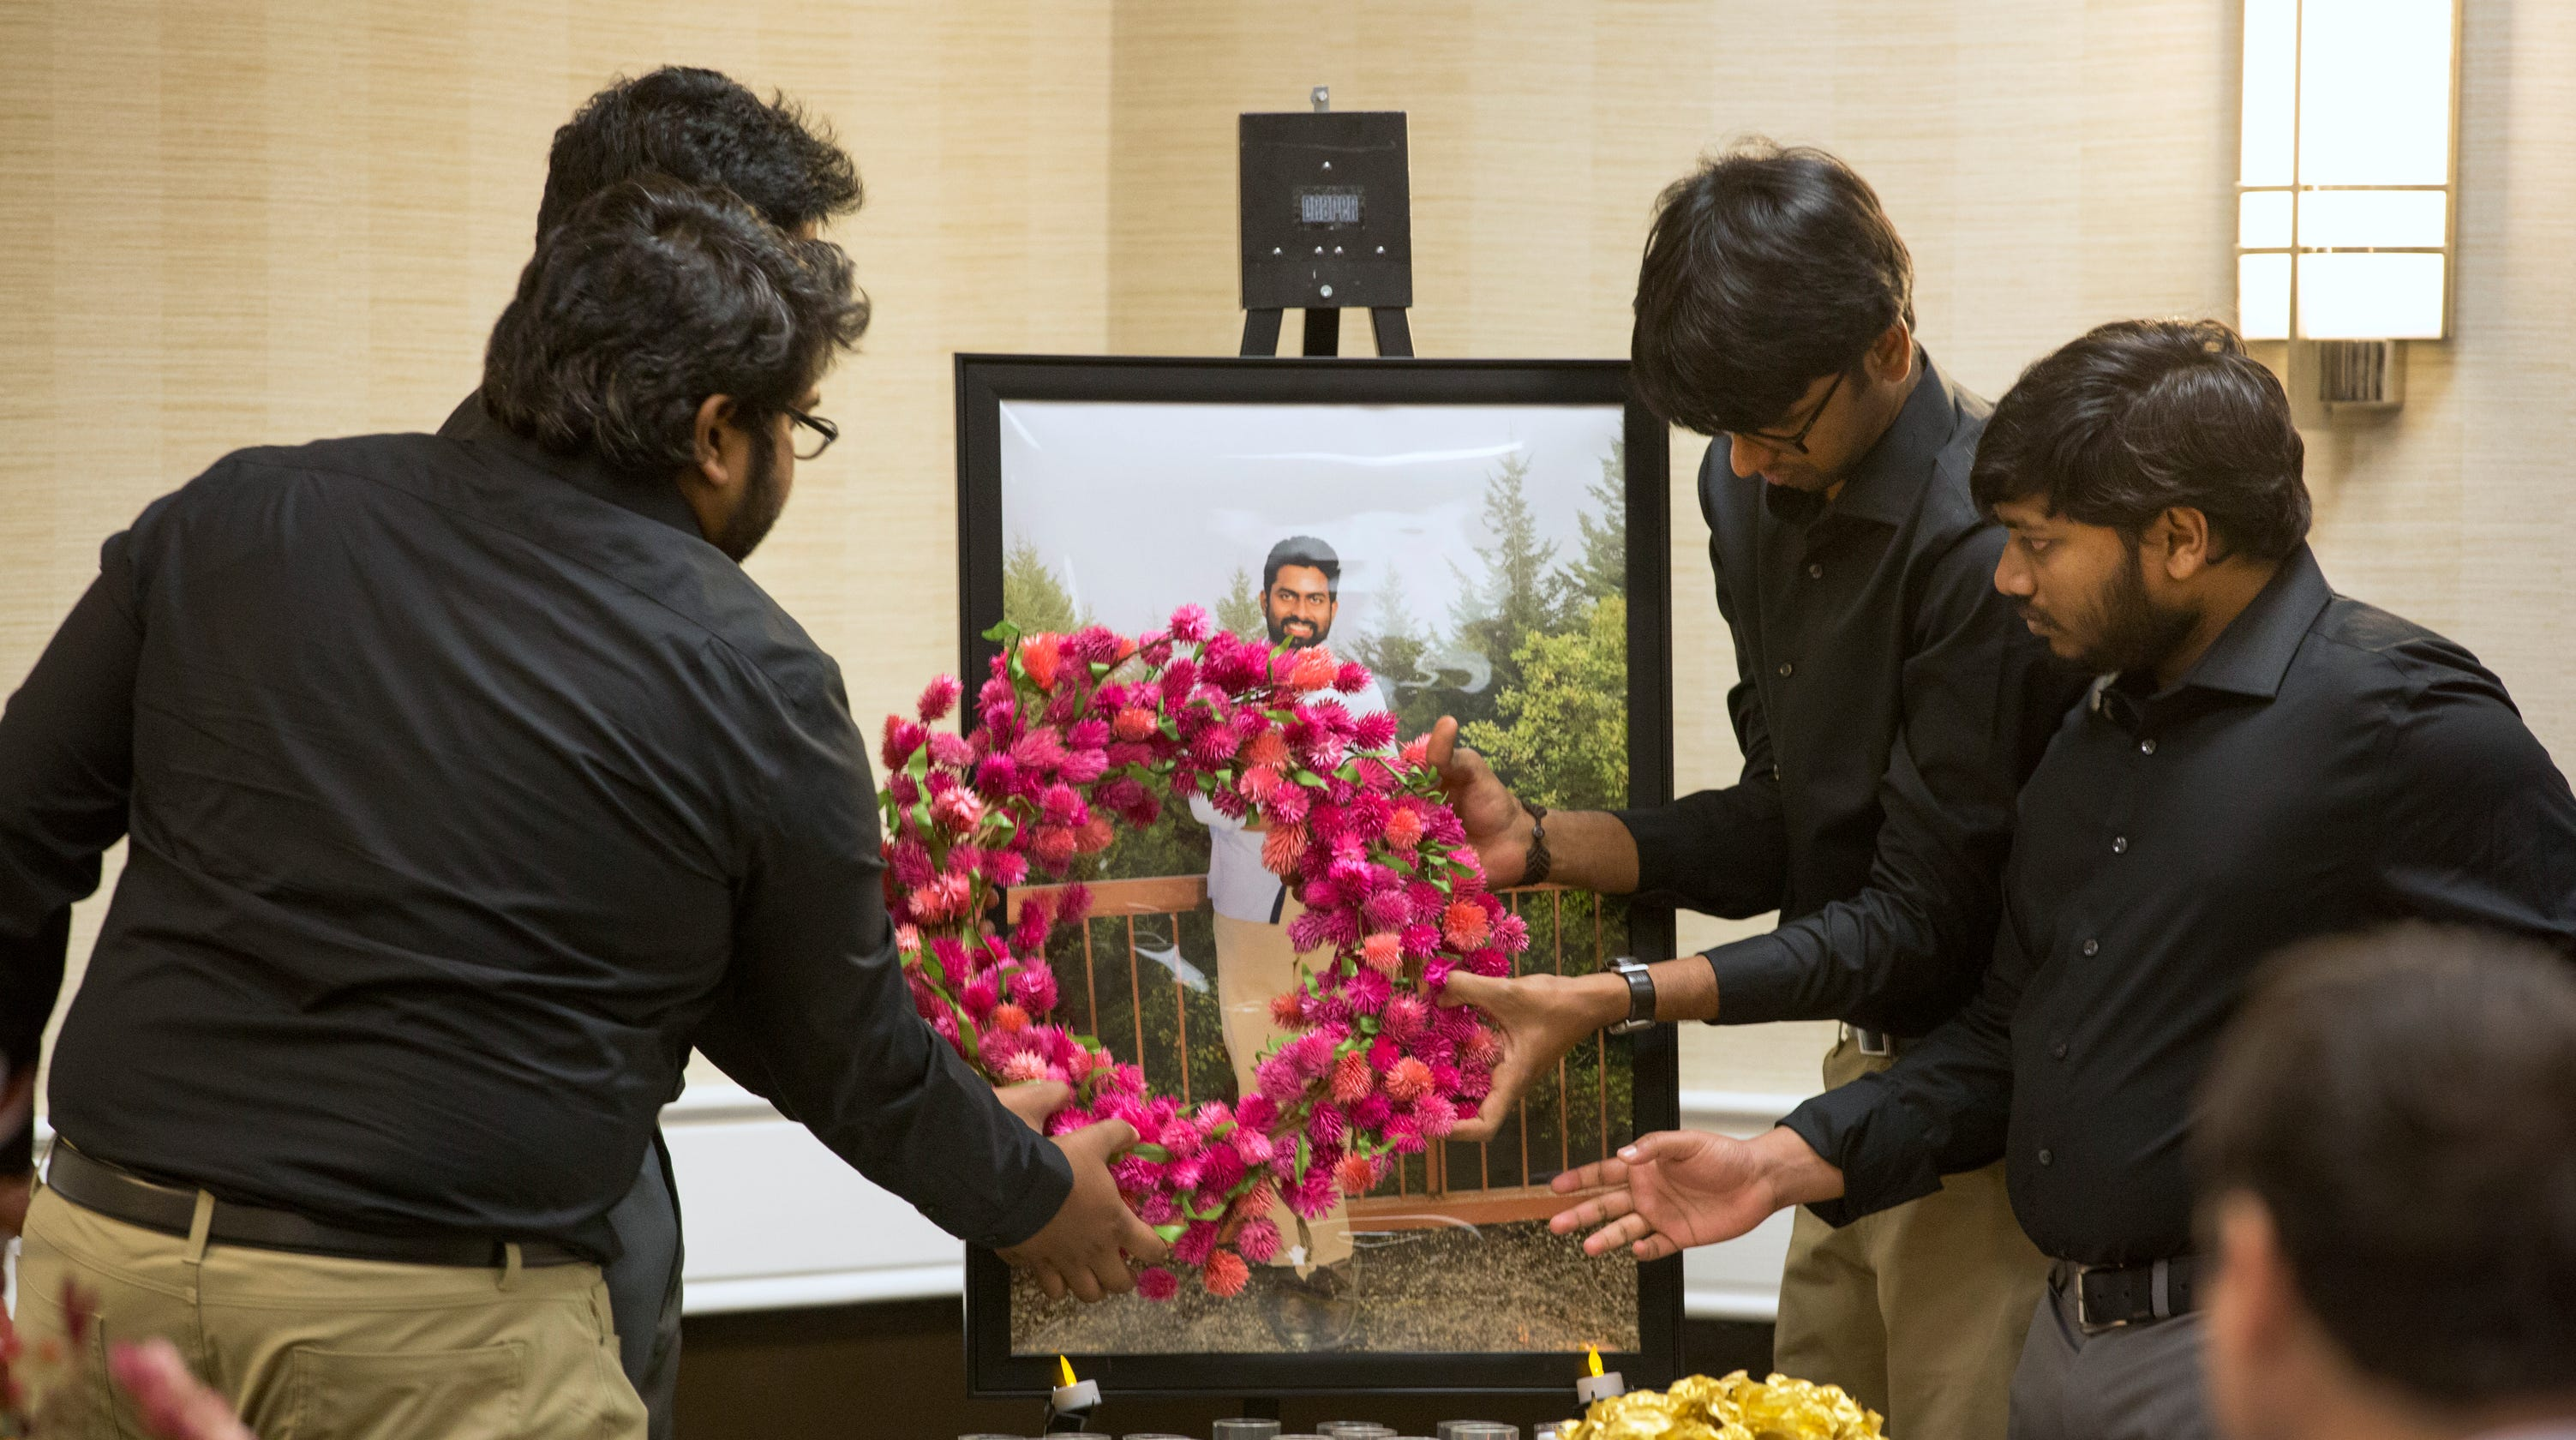 Cincinnati shooting prudhvi raj kandepis friends hold memorial spiritdancerdesigns Images